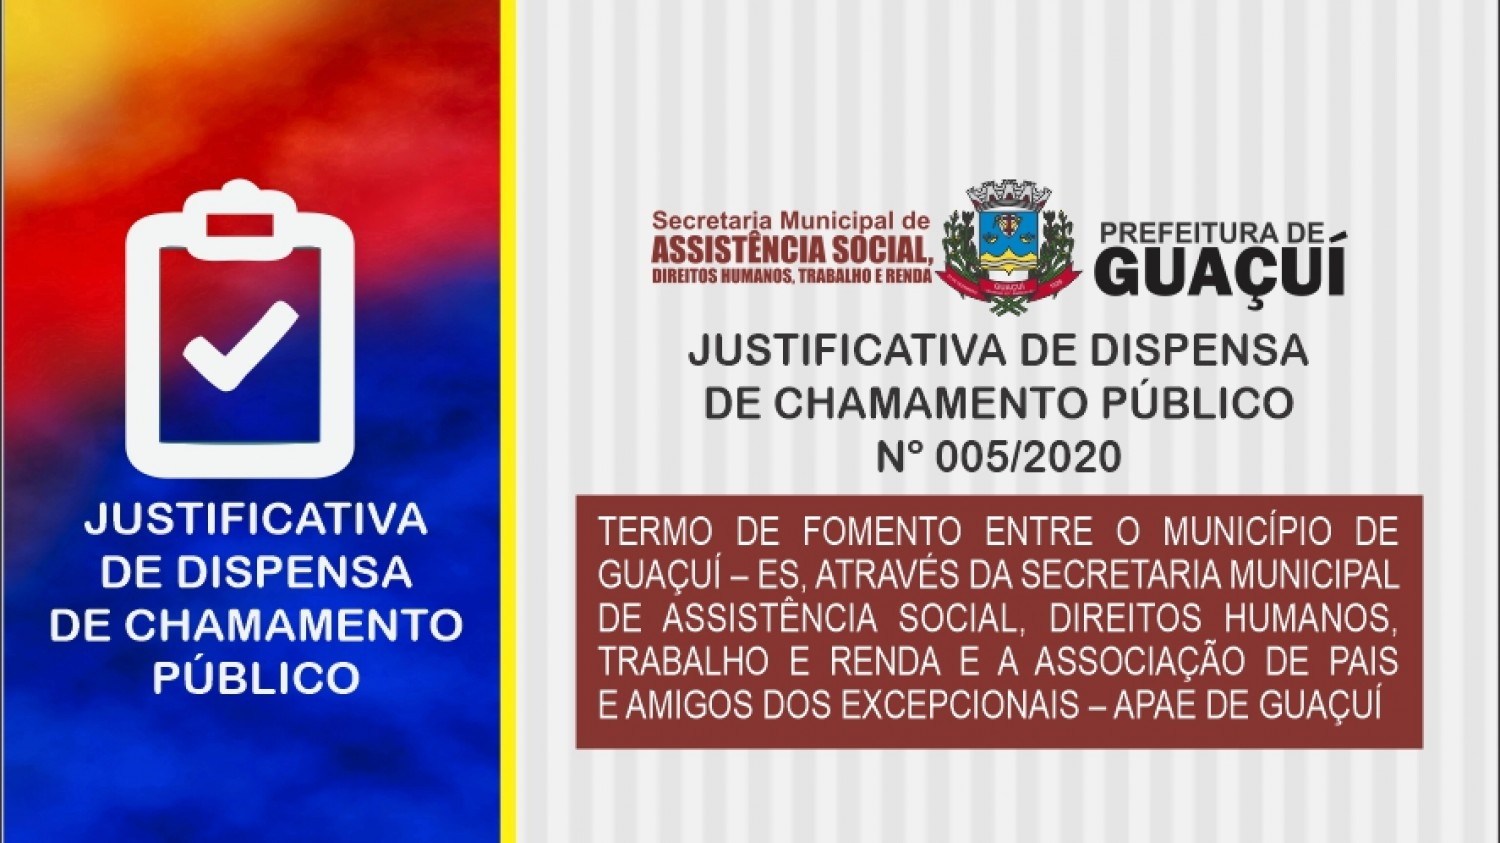 JUSTIFICATIVA DE DISPENSA DE CHAMAMENTO PÚBLICO  Nº 005/2020